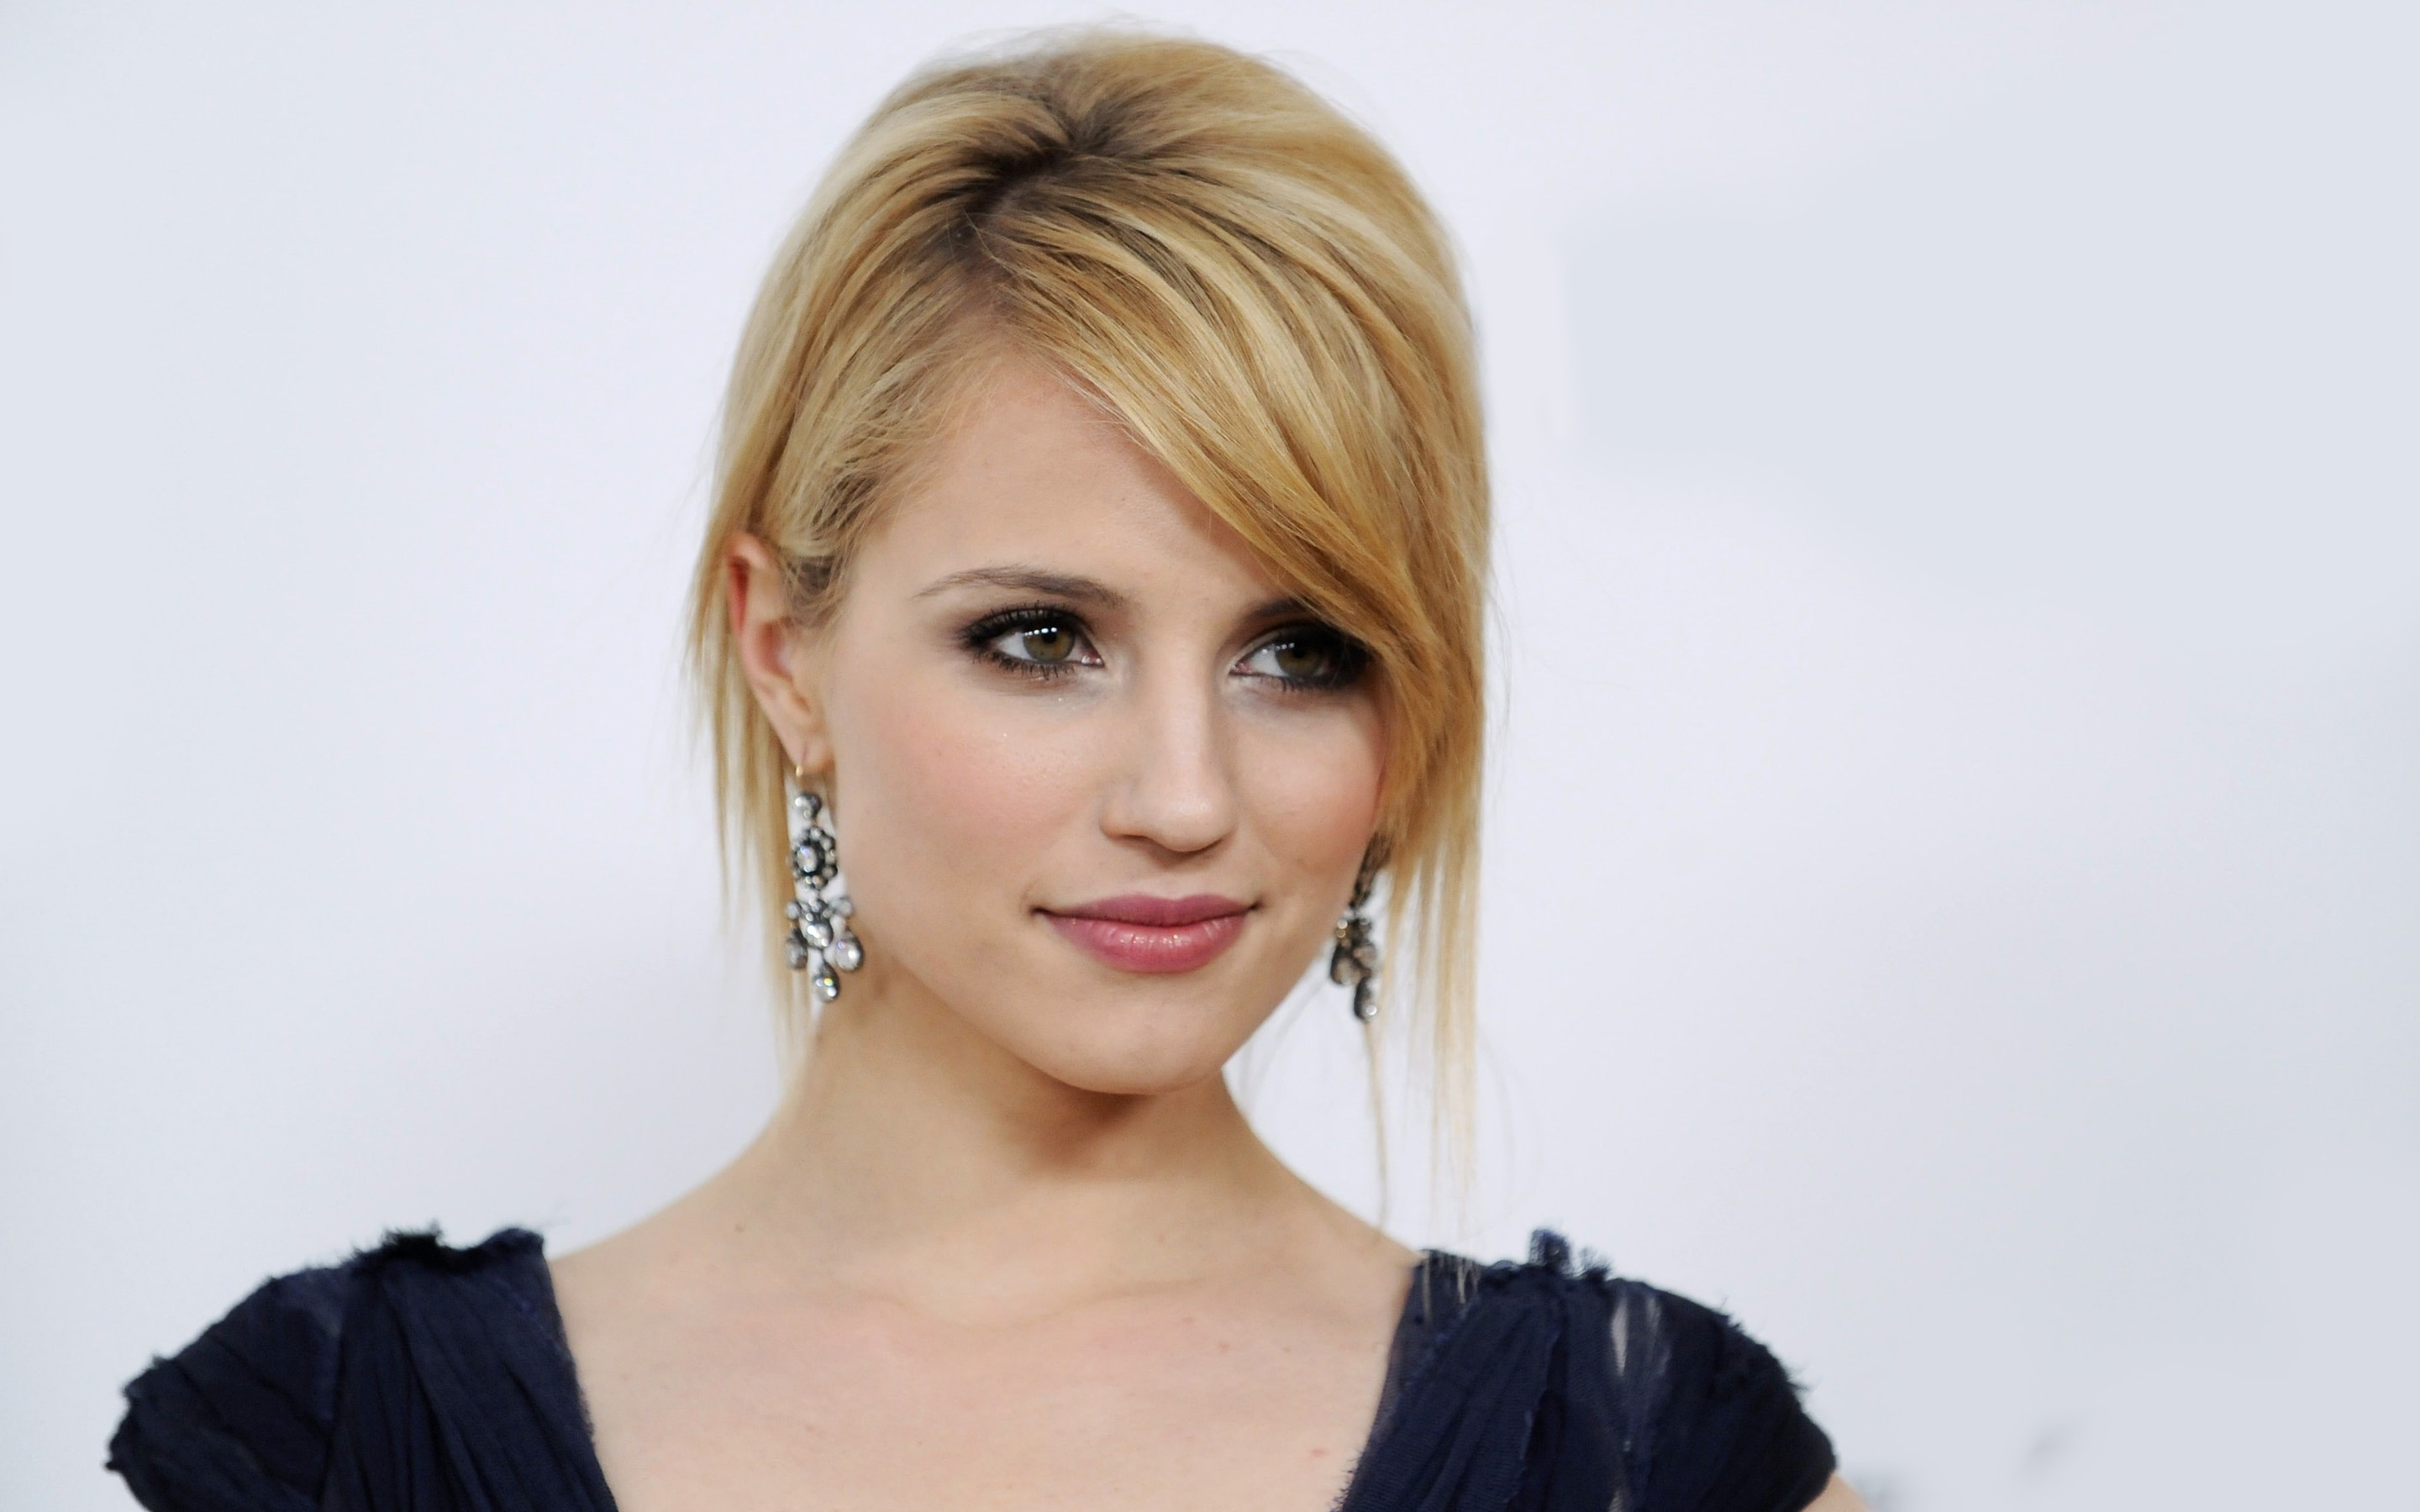 2880x1800 - Dianna Agron Wallpapers 35